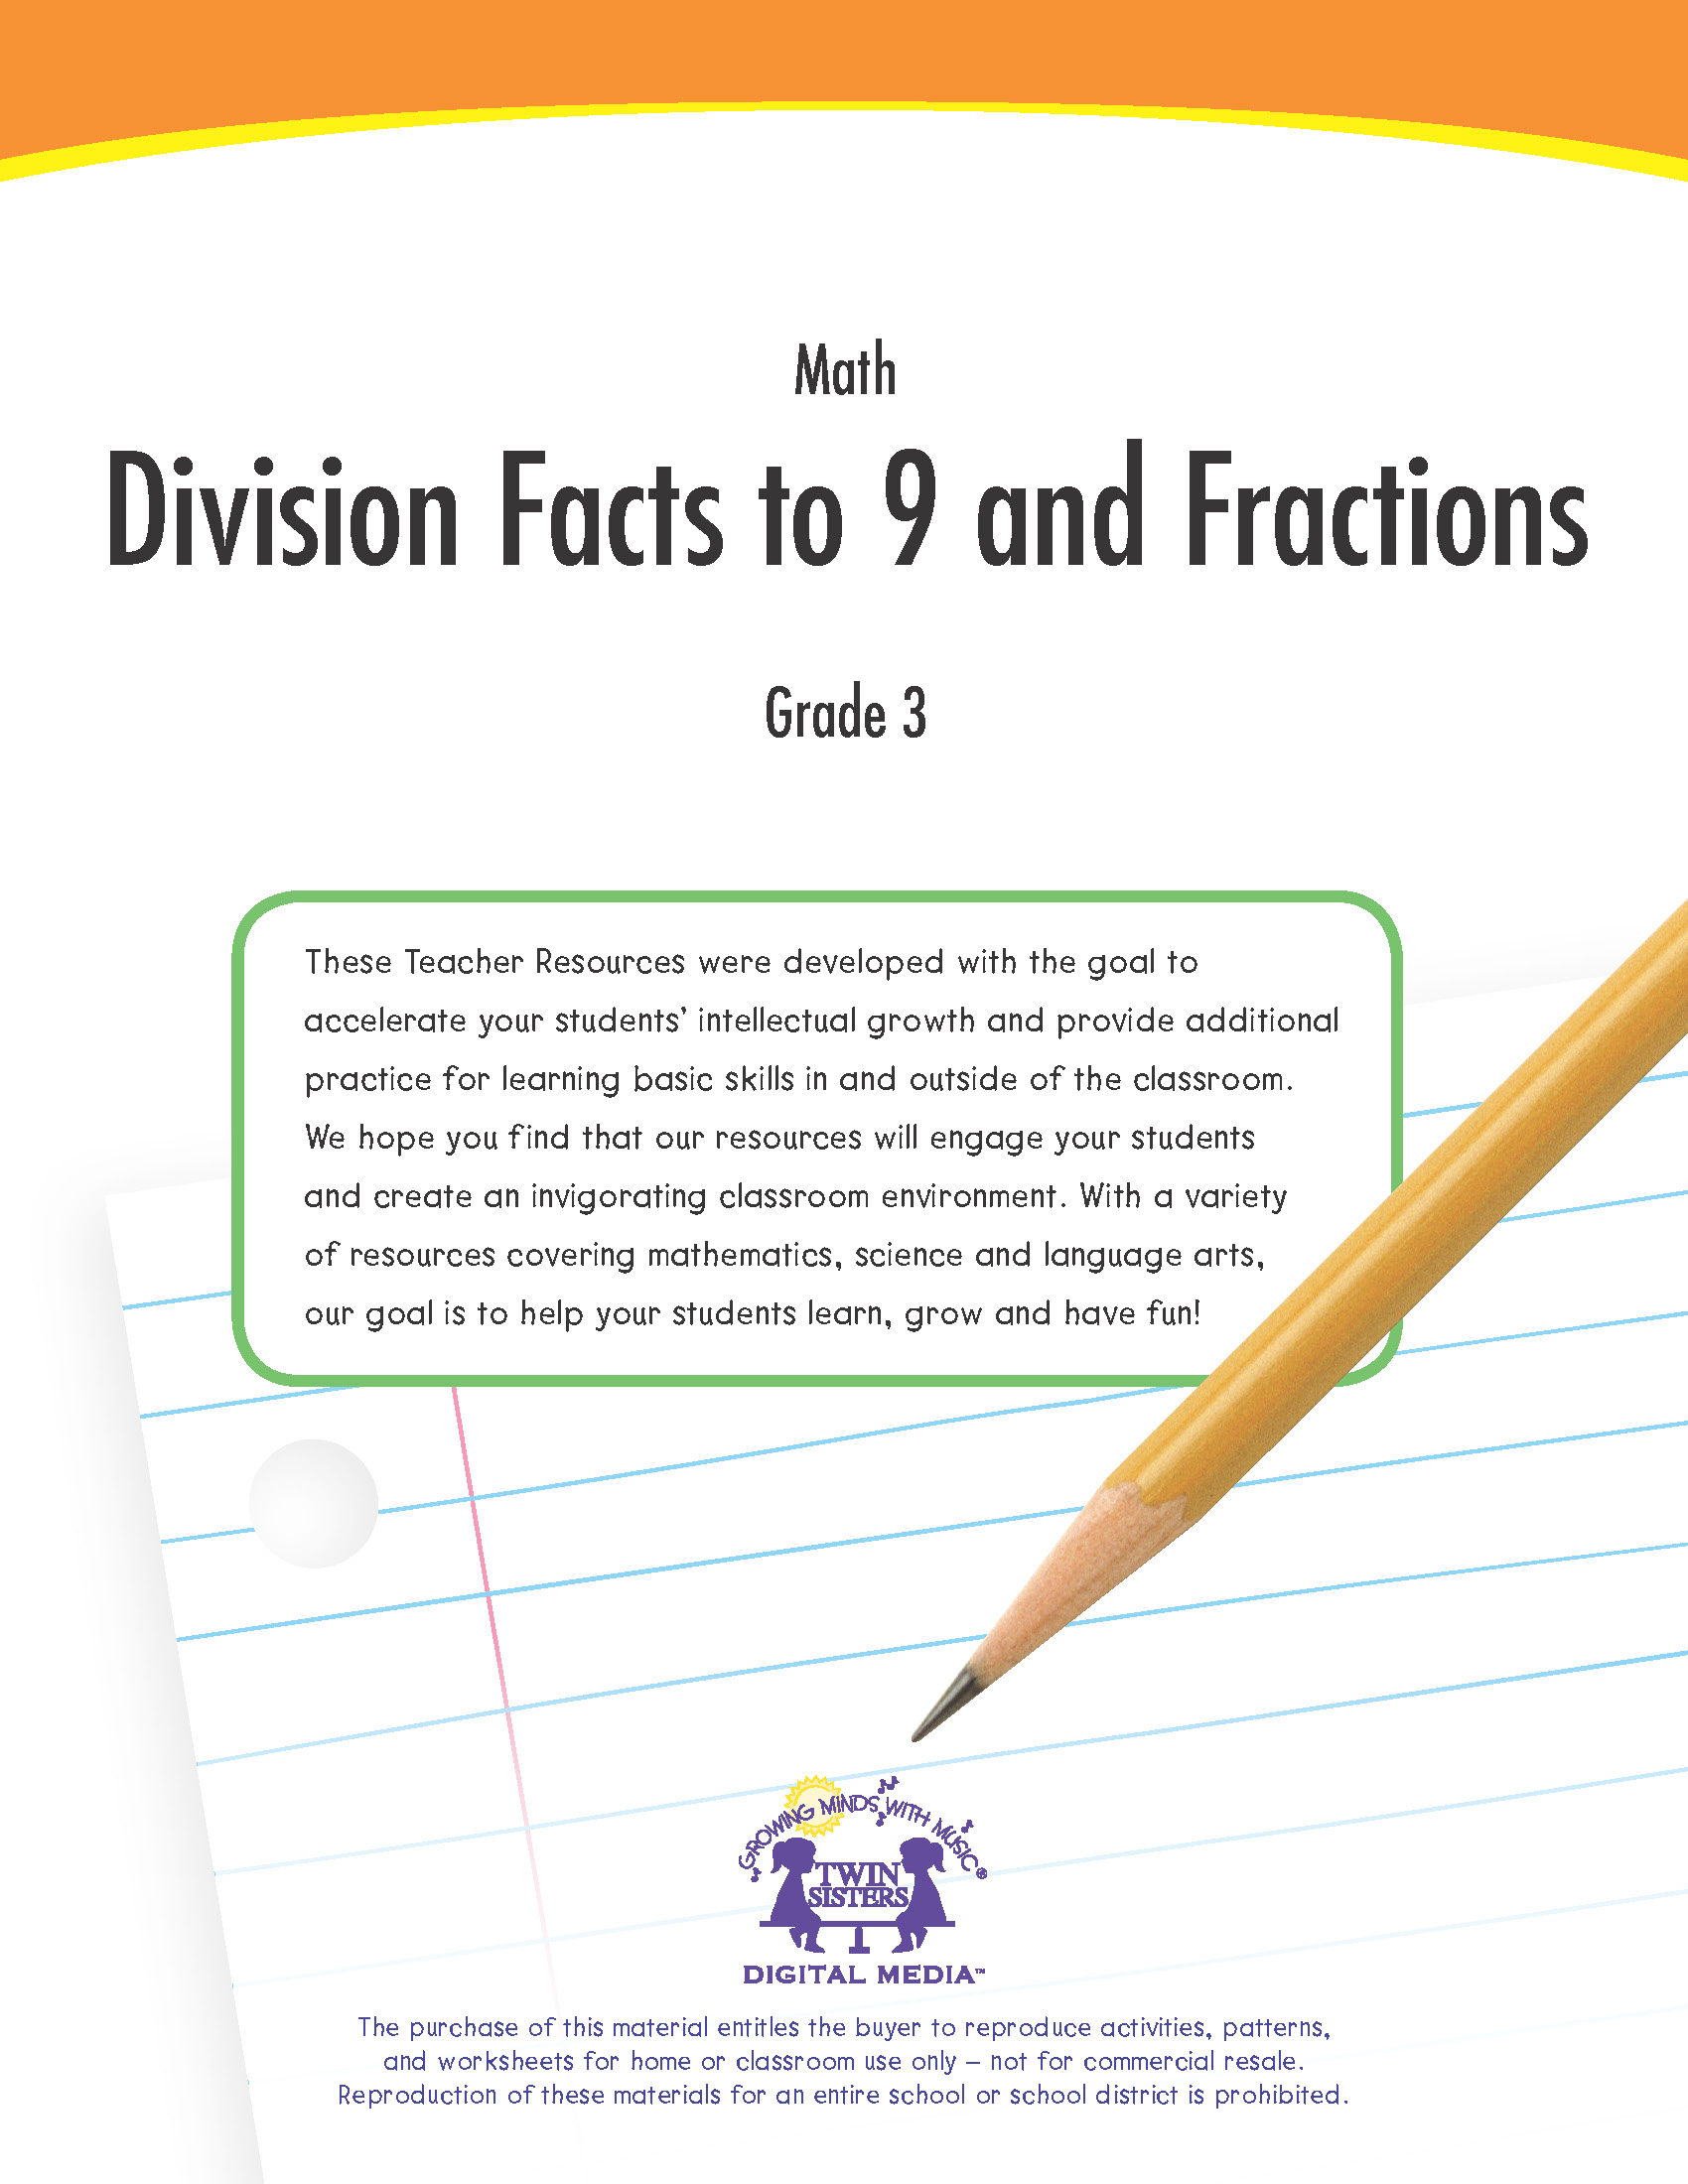 Math Grade 3 Division Facts To 9 And Fractions